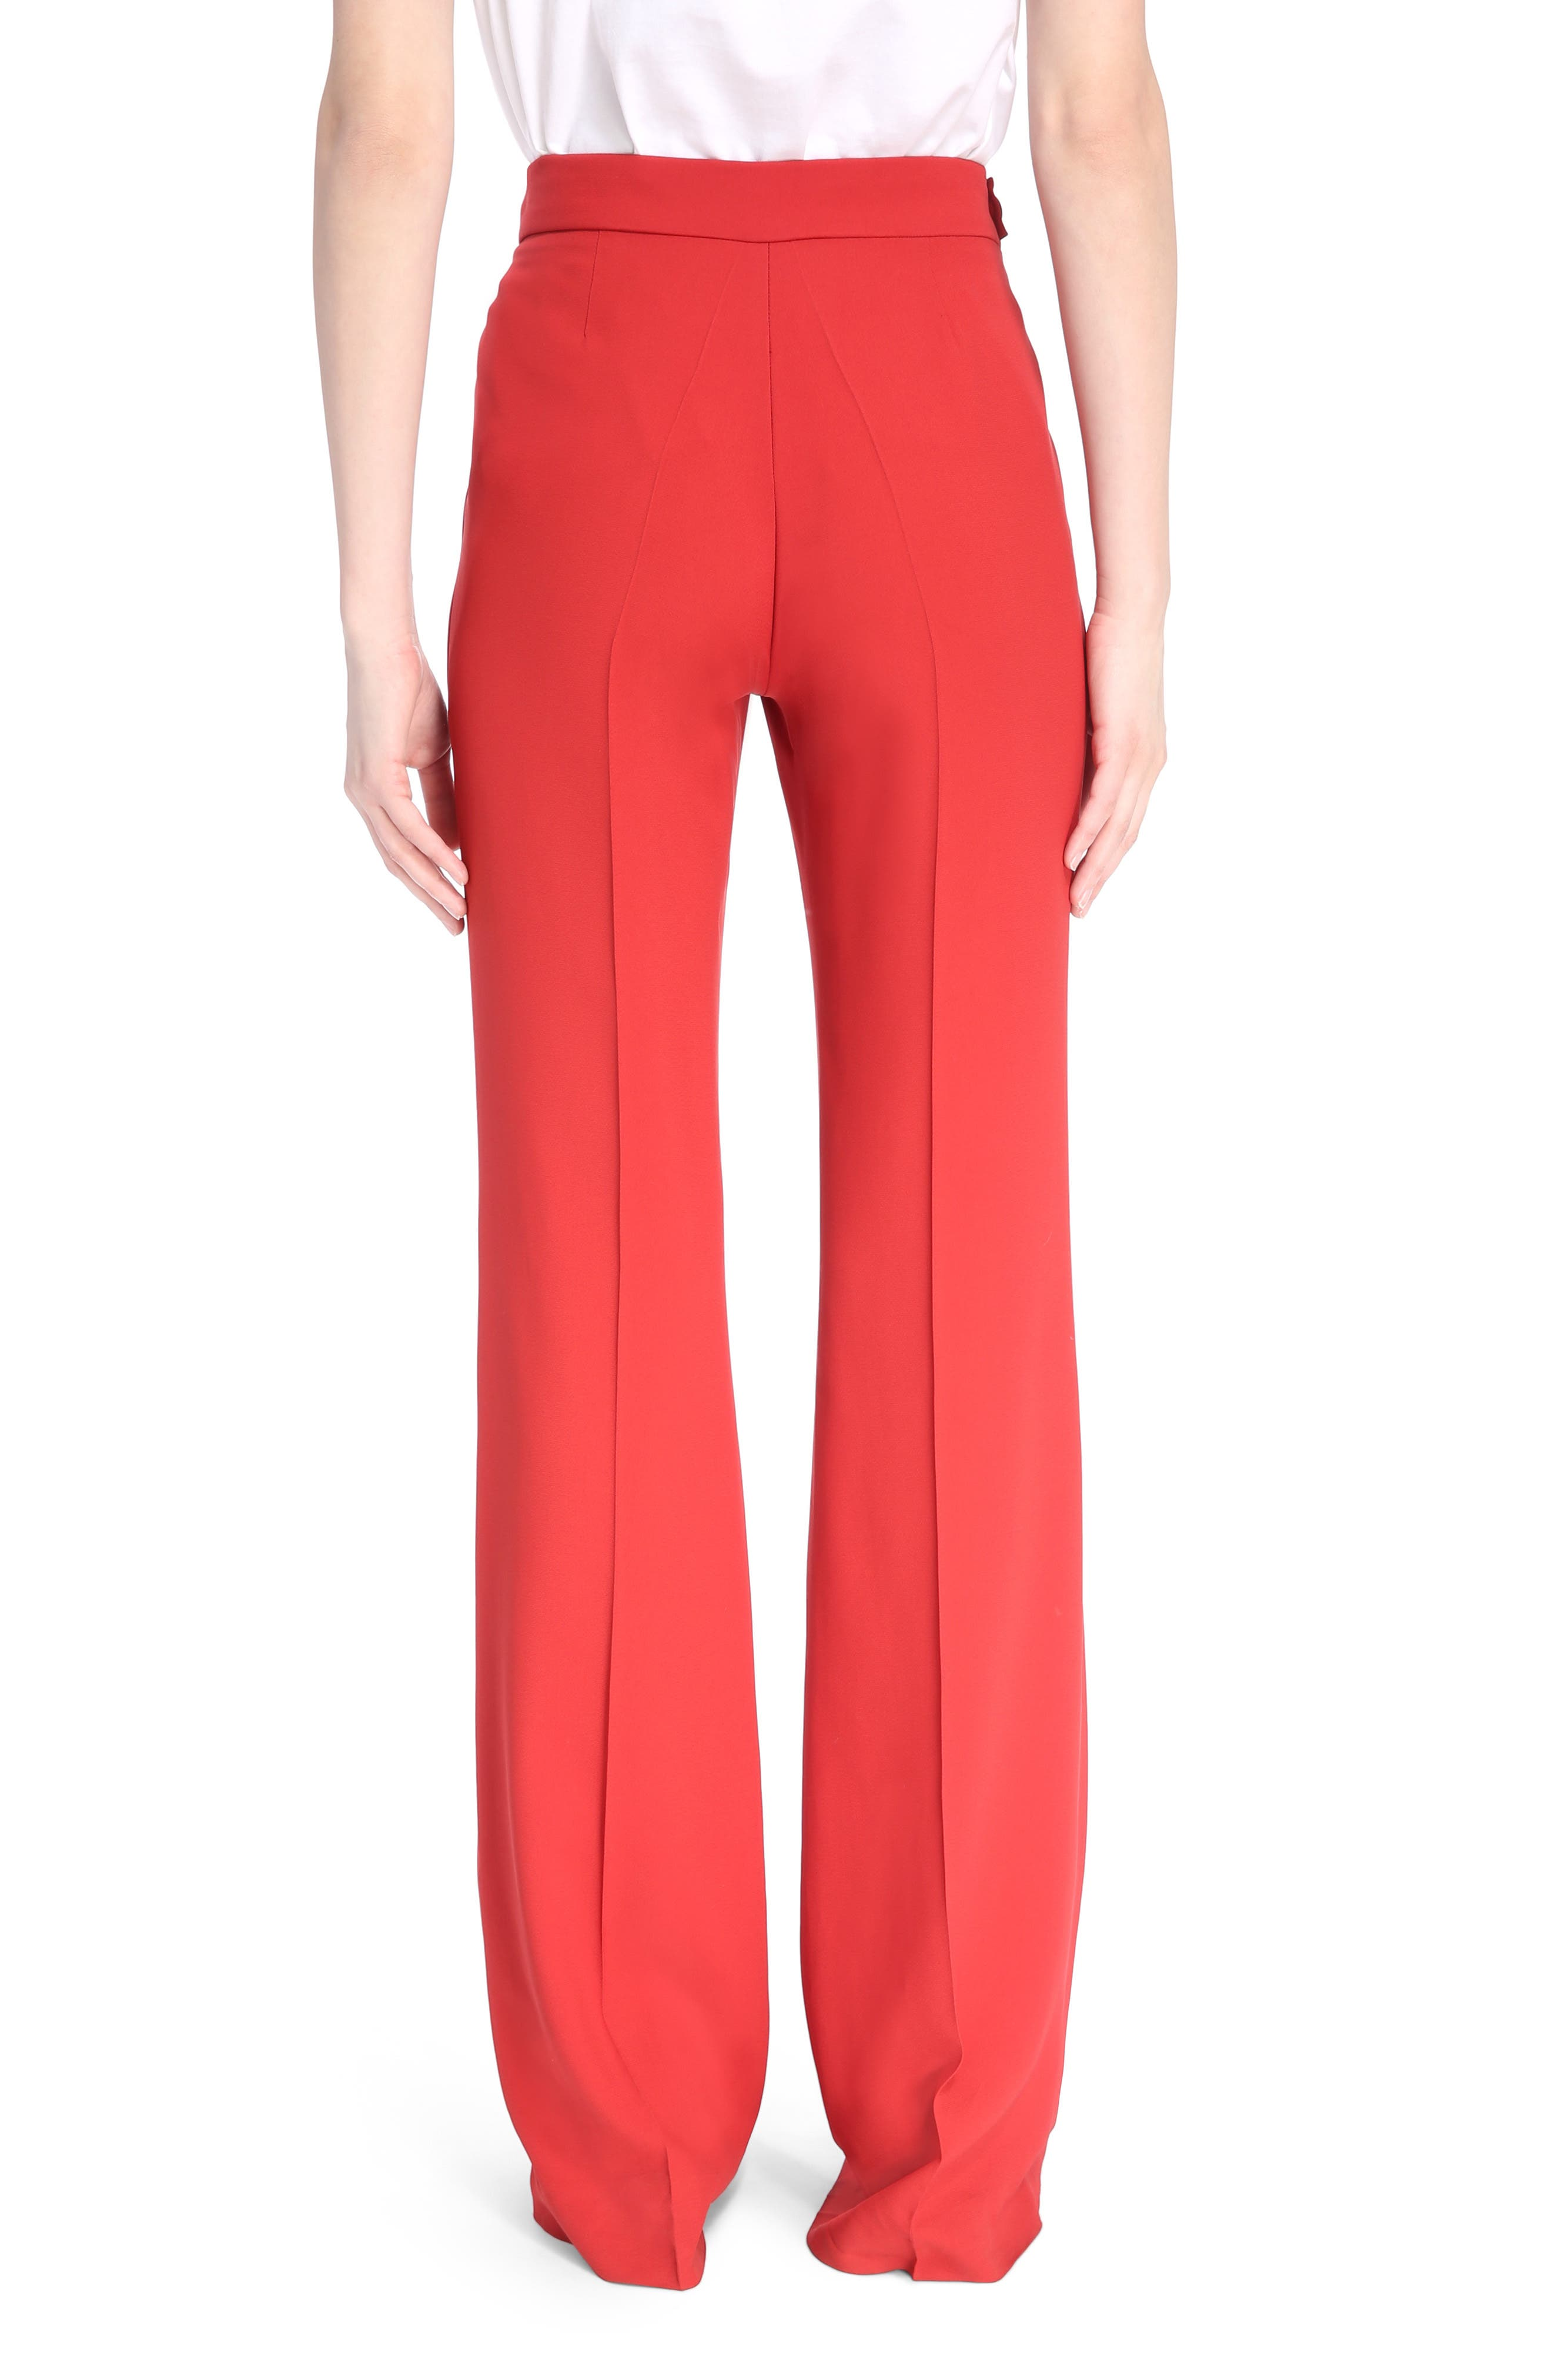 Cady Flare Suiting Pants,                             Alternate thumbnail 2, color,                             Ginger Red